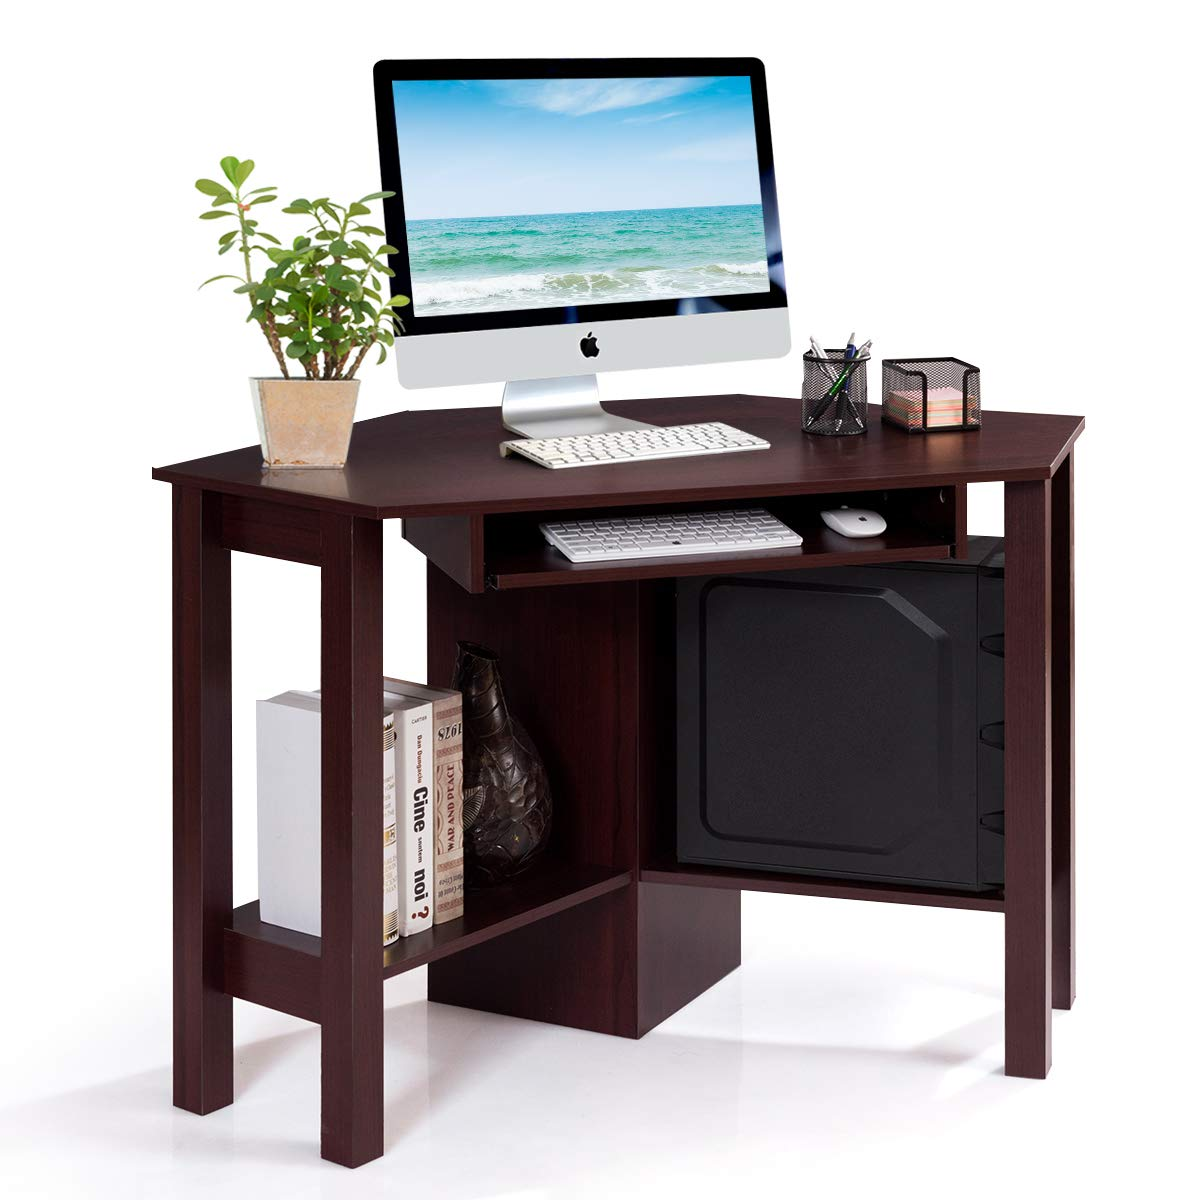 Tangkula Corner Desk, Corner Computer Desk, Wood Compact Home Office Desk, Laptop PC Table Writing Study Table, Workstation with Smooth Keyboard Tray & Storage Shelves by Tangkula